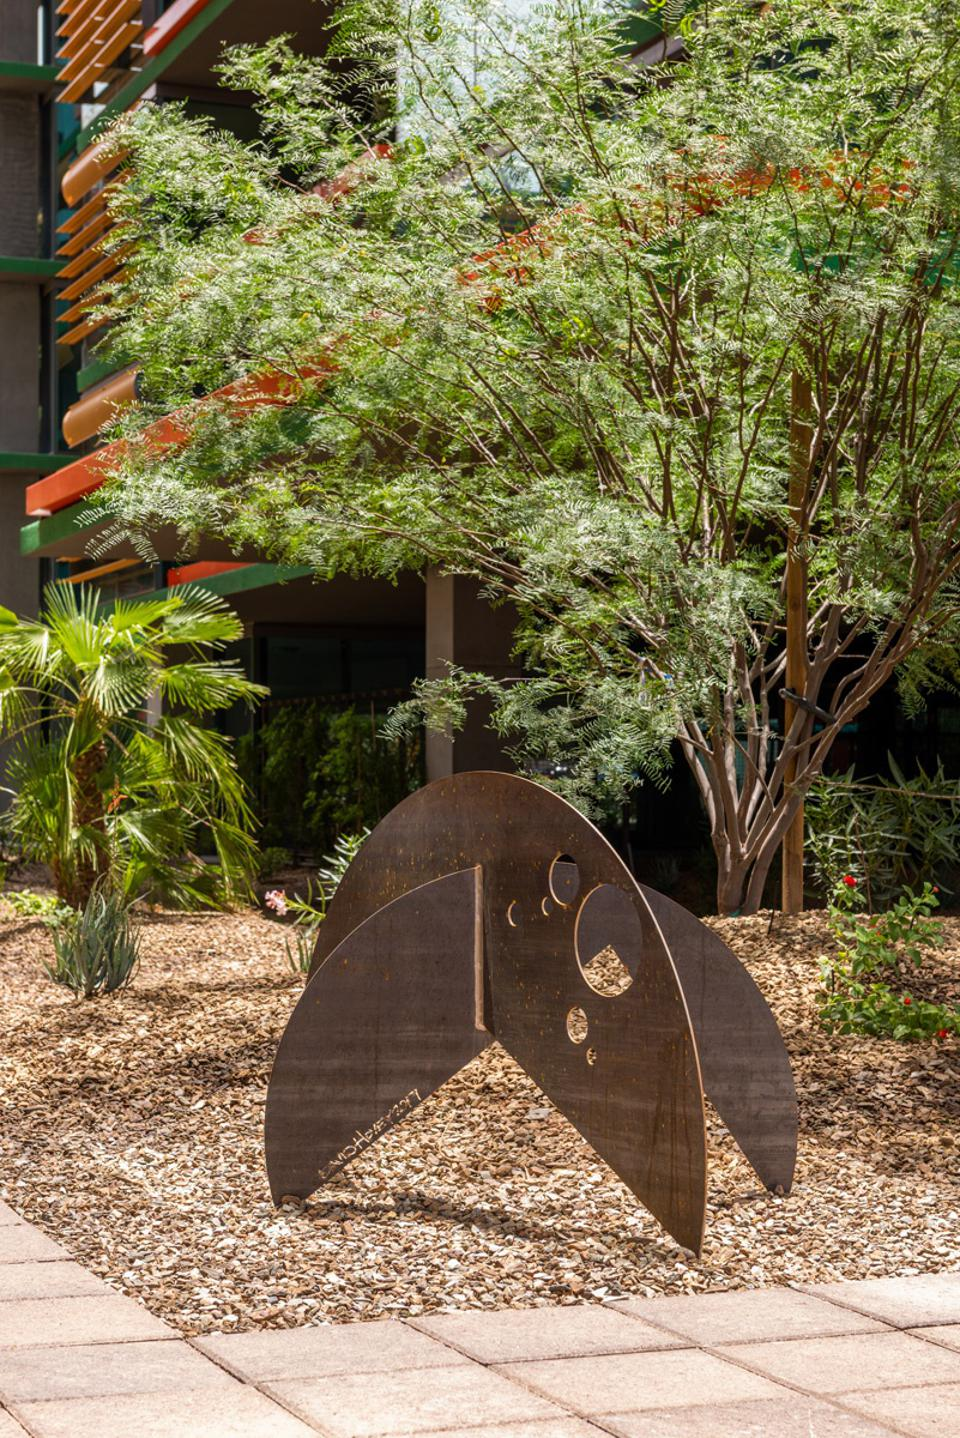 Public art will become an important part of reimagined urban green spaces.